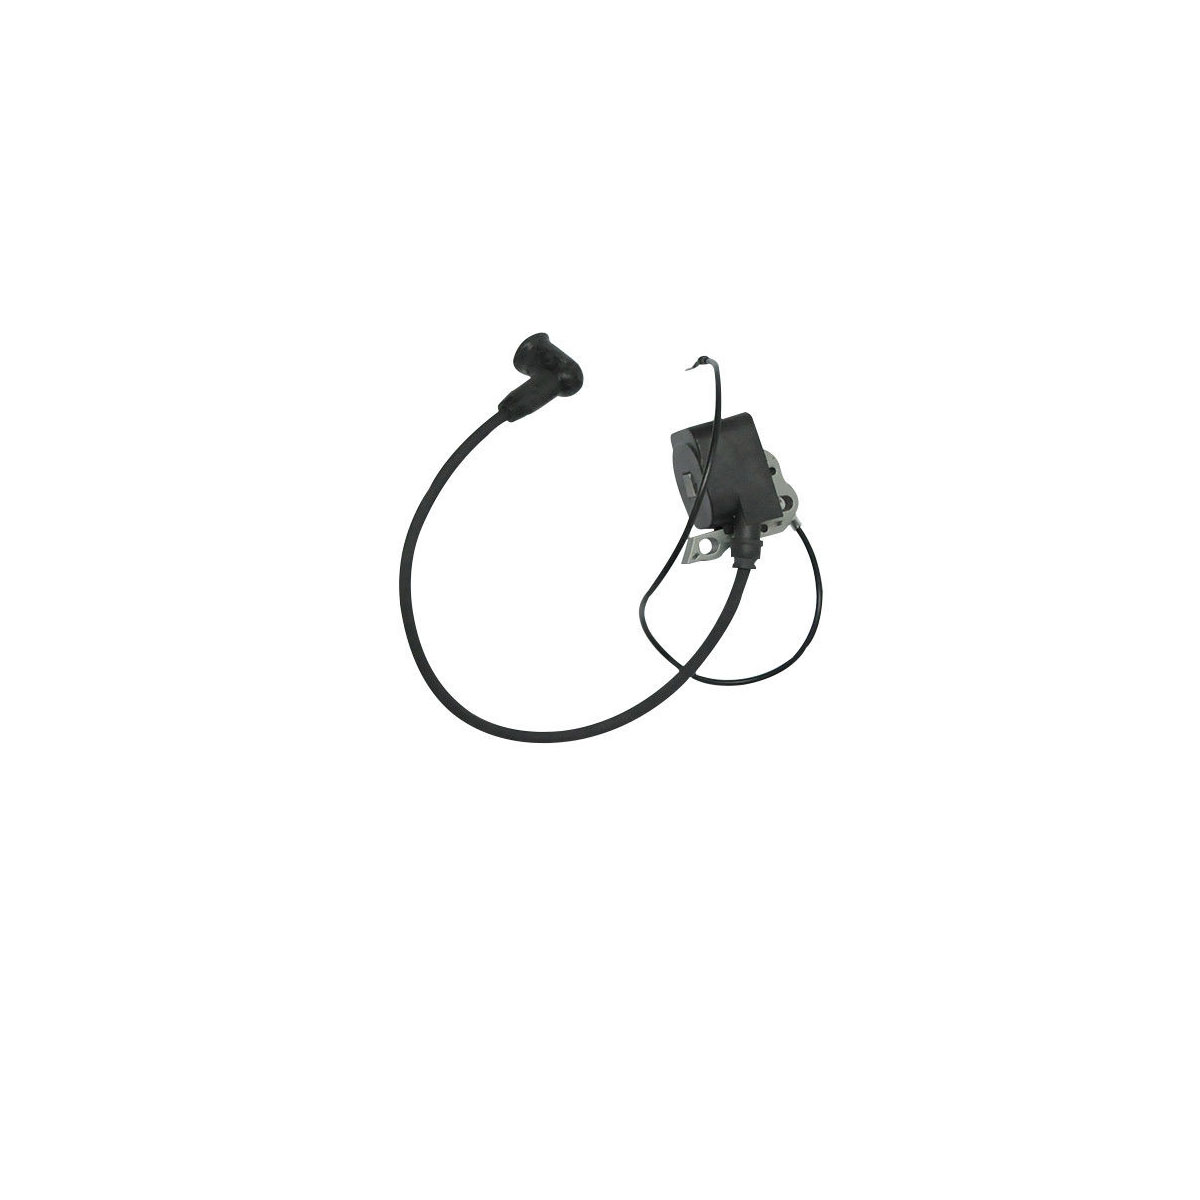 Ignition Coil and Wire for Stihl FS160 FS180 FS220 FS280 290 OEM 0000 400 1306